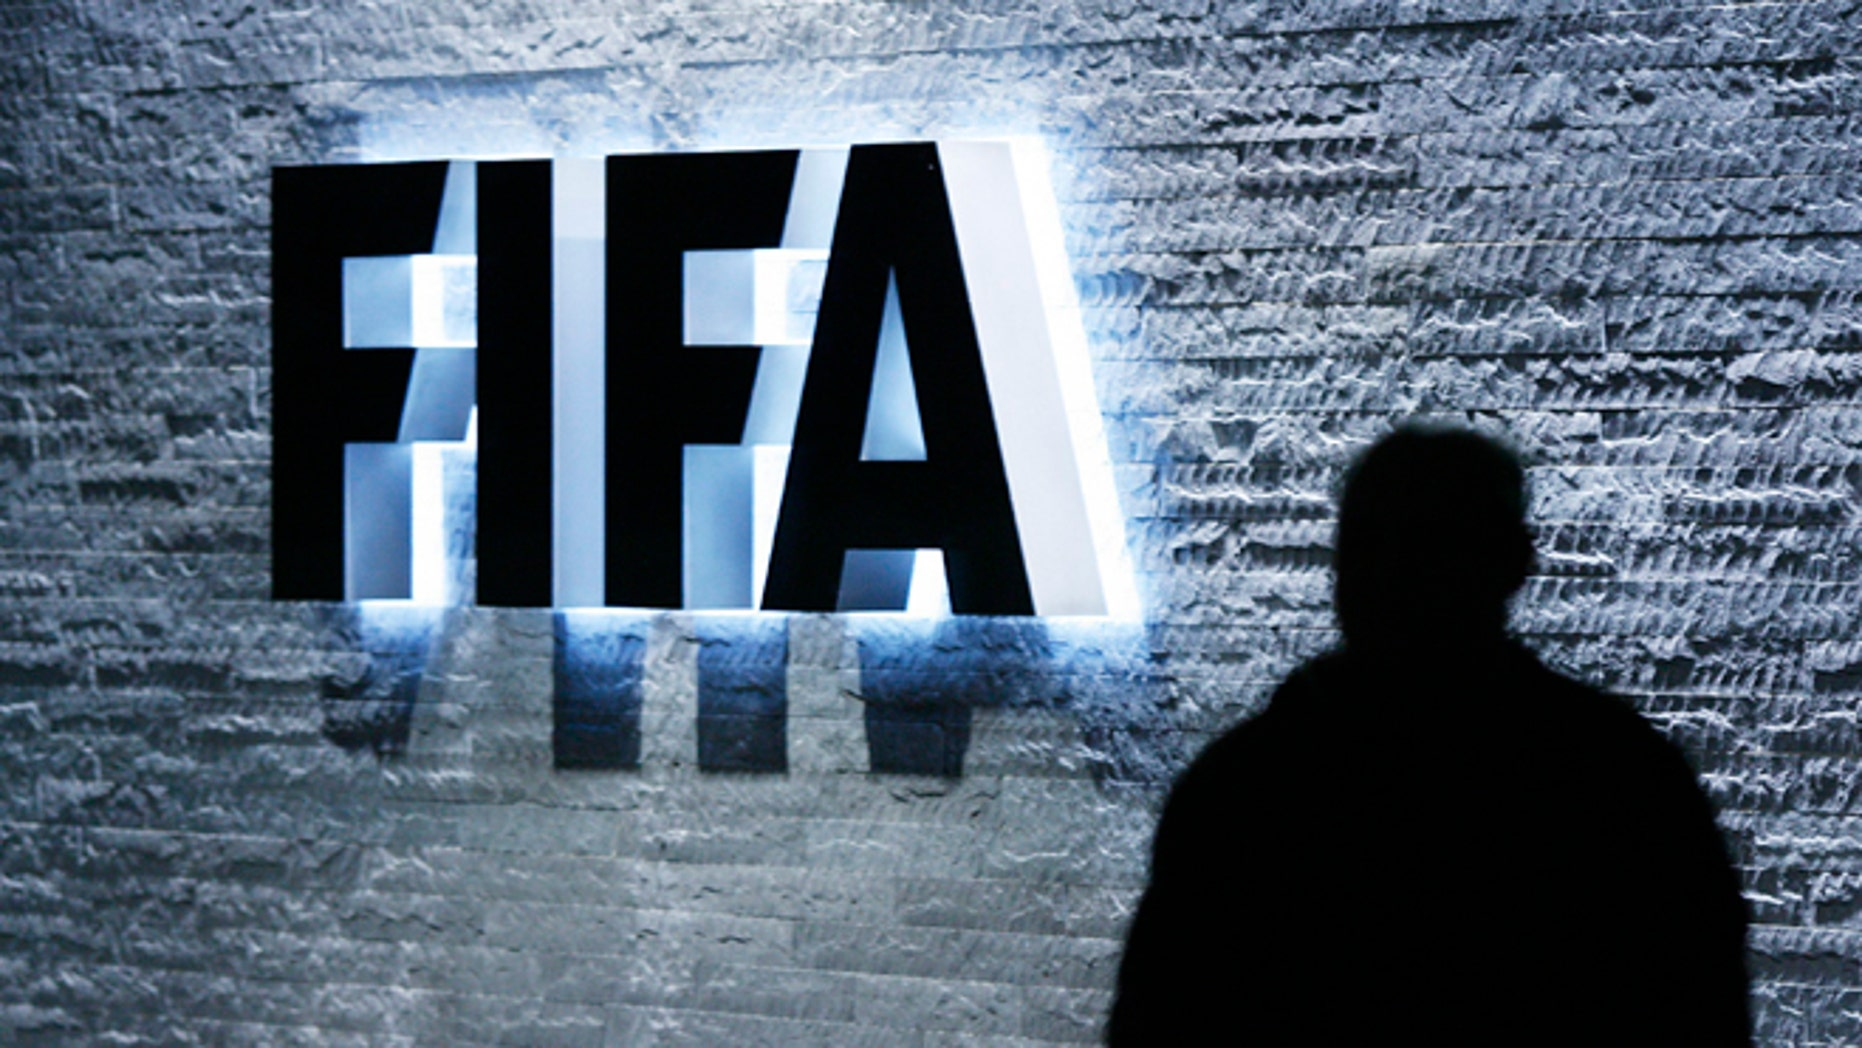 FILE - In this Oct. 29, 2007 file photo, a person stands next to the FIFA logo at the FIFA headquarter in Zurich, Switzerland. The Swiss Federal Office of Justice said six soccer officials have been arrested and detained pending extradition at  the request of U.S. authorities ahead of the FIFA congress in Zurich. In a statement Wednesday, May 27, 2015, the FOJ said U.S. authorities suspect the officials of having received paid bribes totaling millions of dollars.  (Steffen Schmidt/Keystone via AP, File)